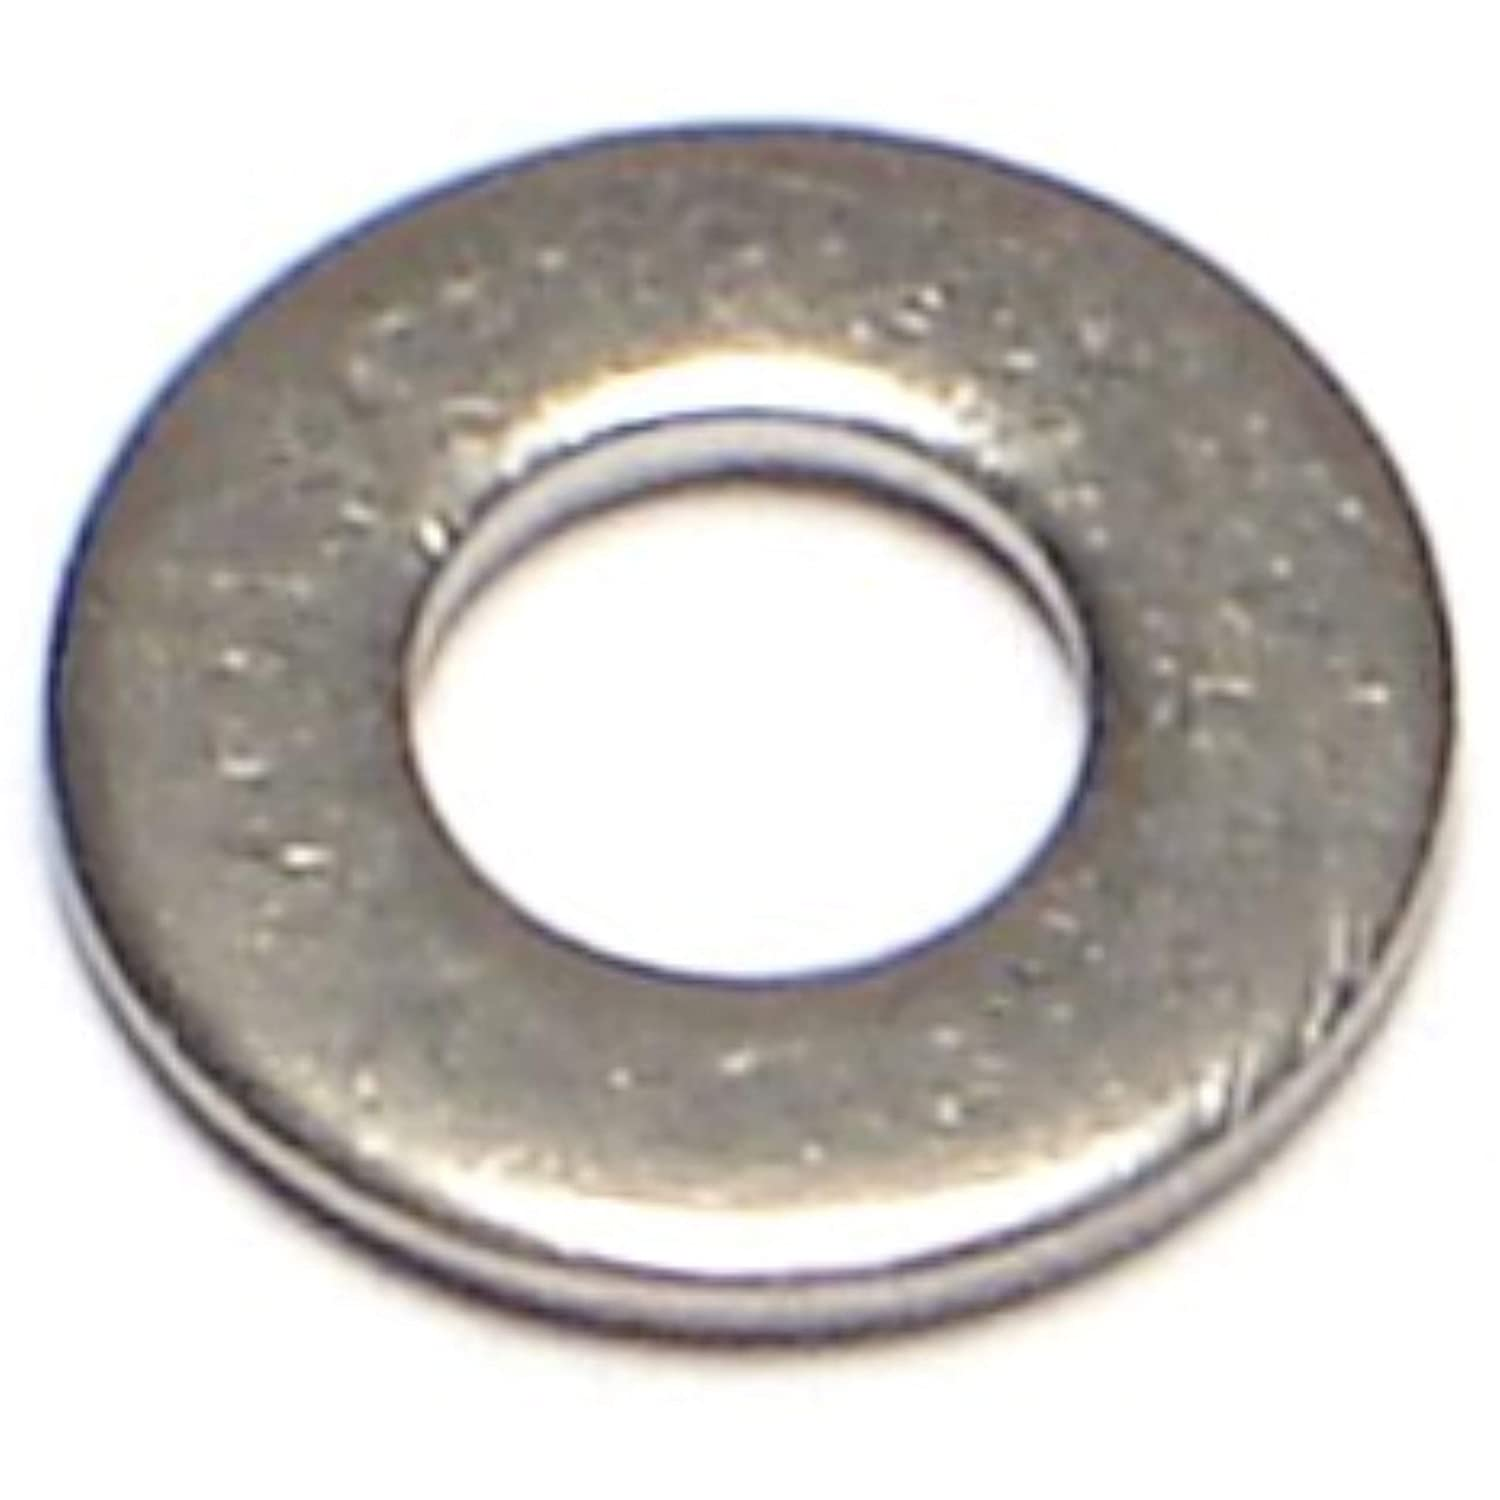 #6 Trim Head 82 degrees Oval Head Phillips Drive #8-18 Thread Size Zinc Plated Finish Steel Sheet Metal Screw 3//4 Length Pack of 100 Type AB